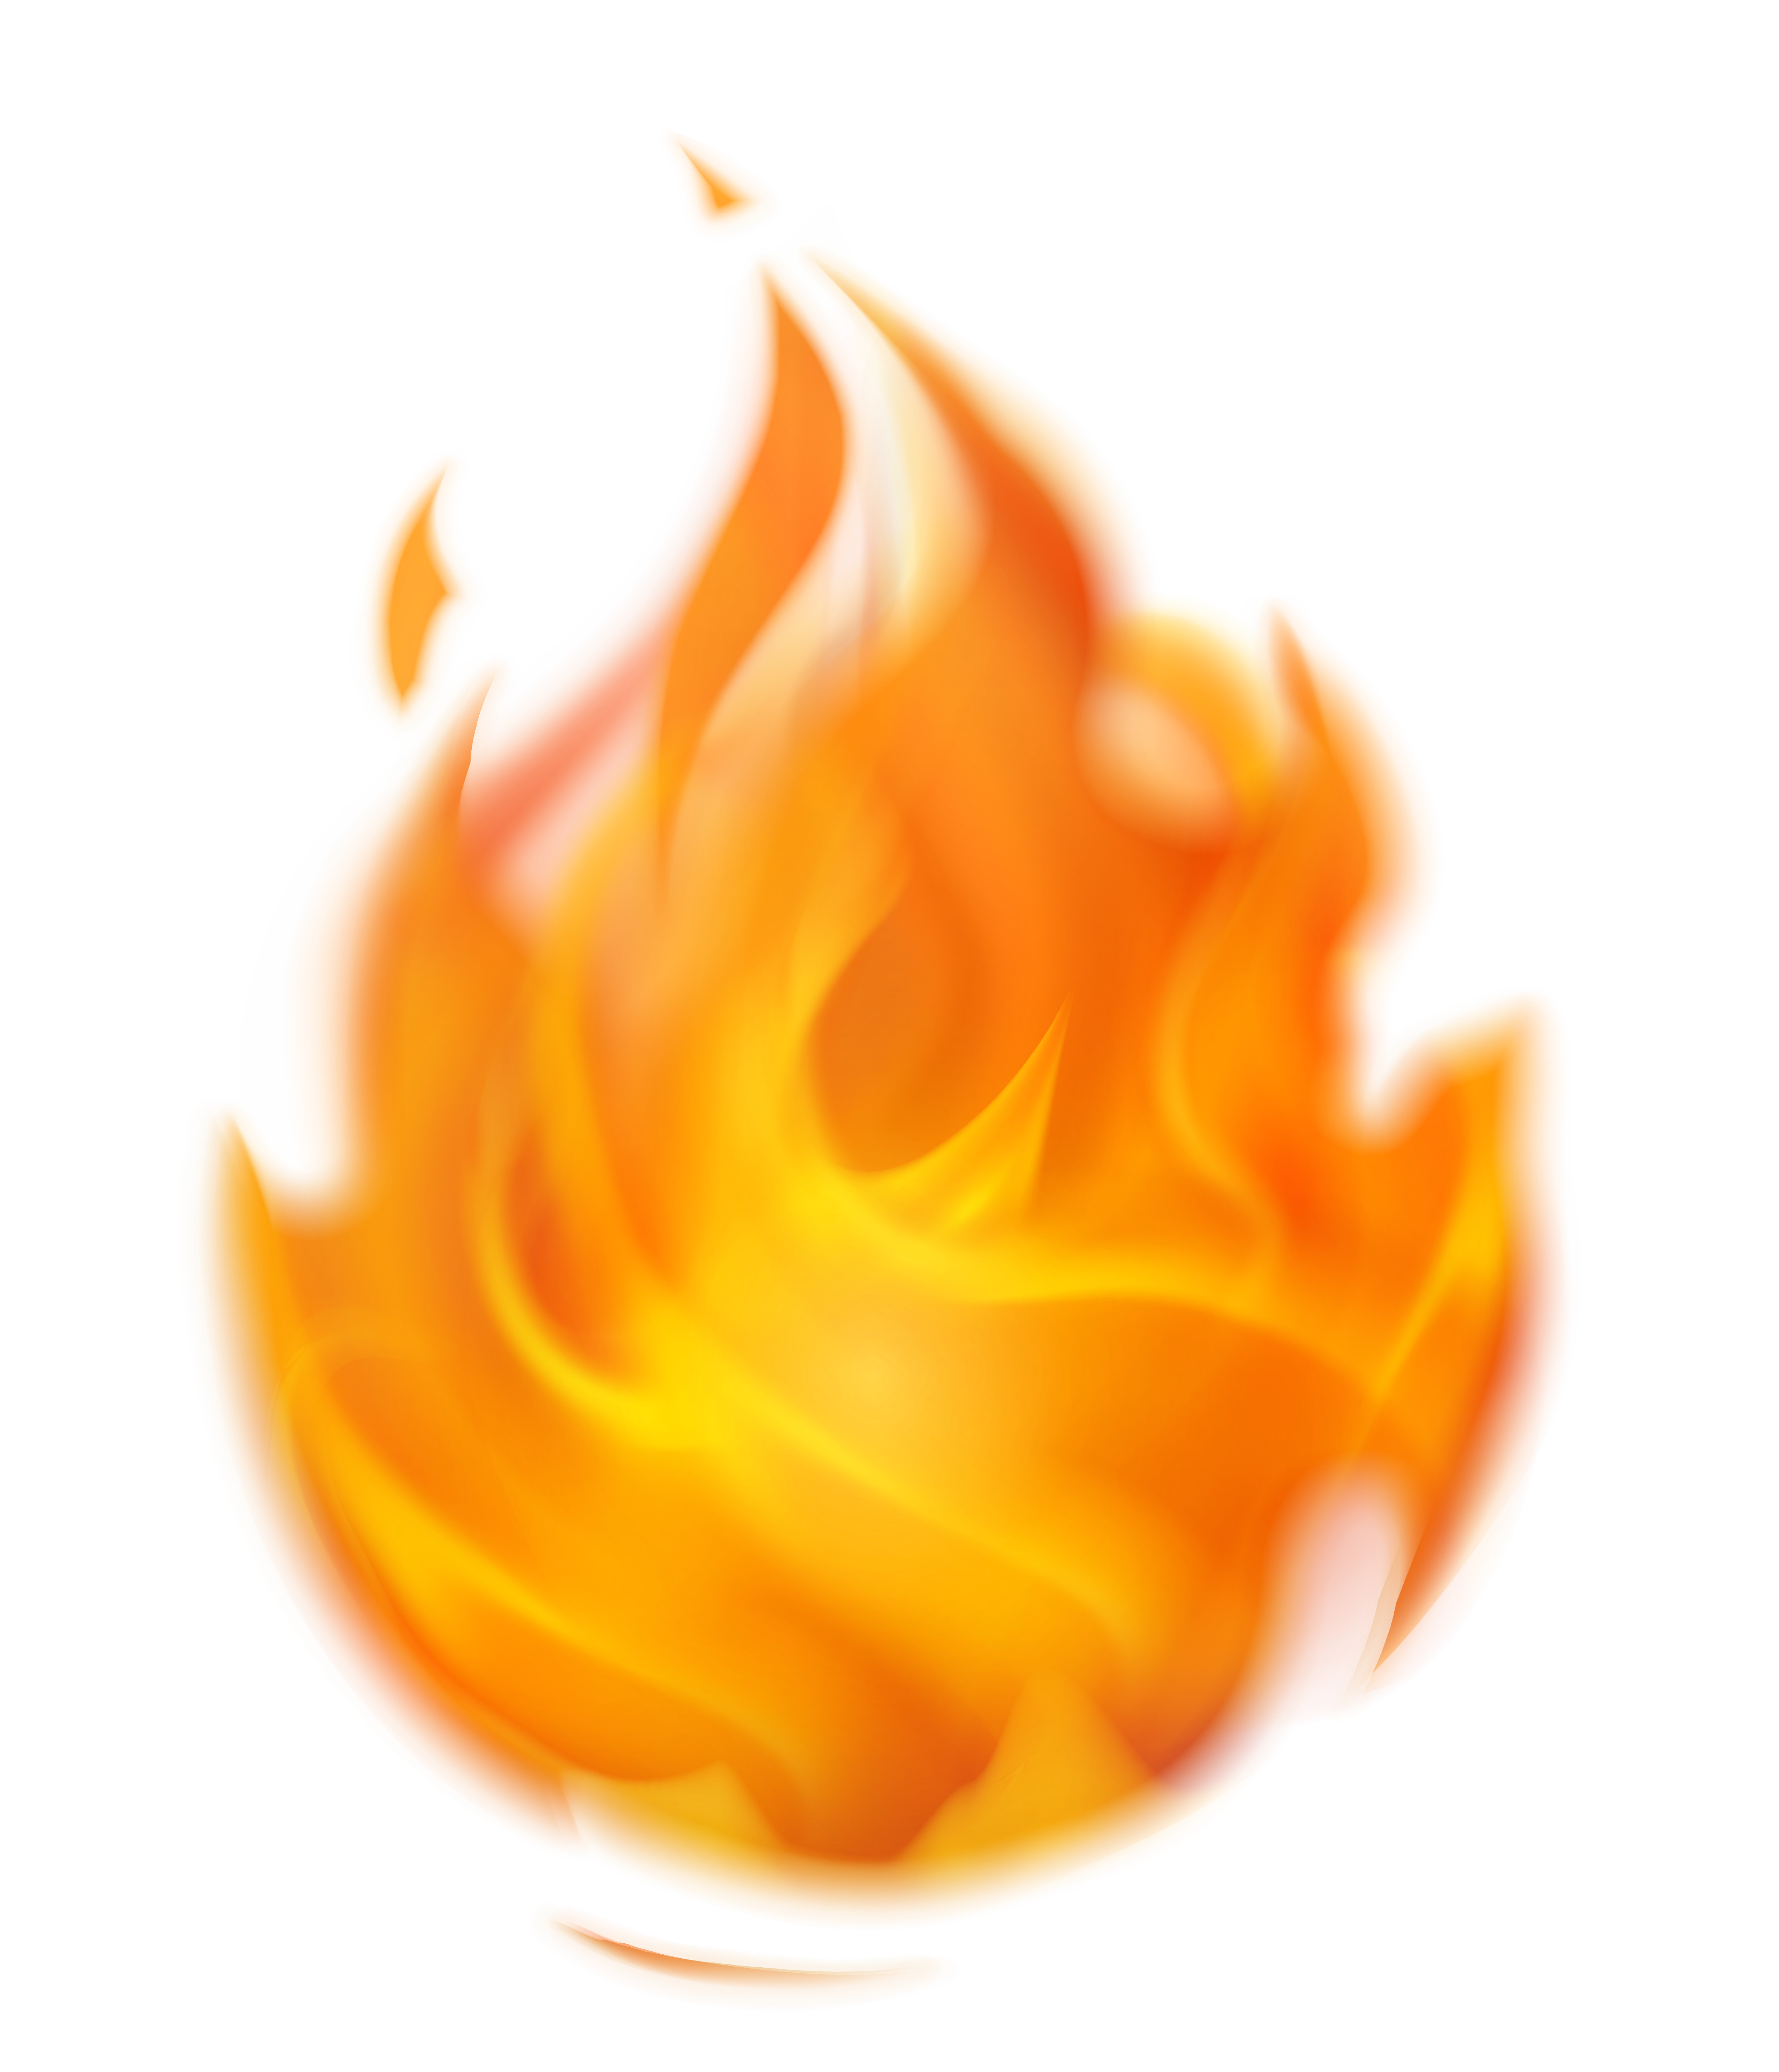 Fire clip art flaming. Flames clipart orange flame